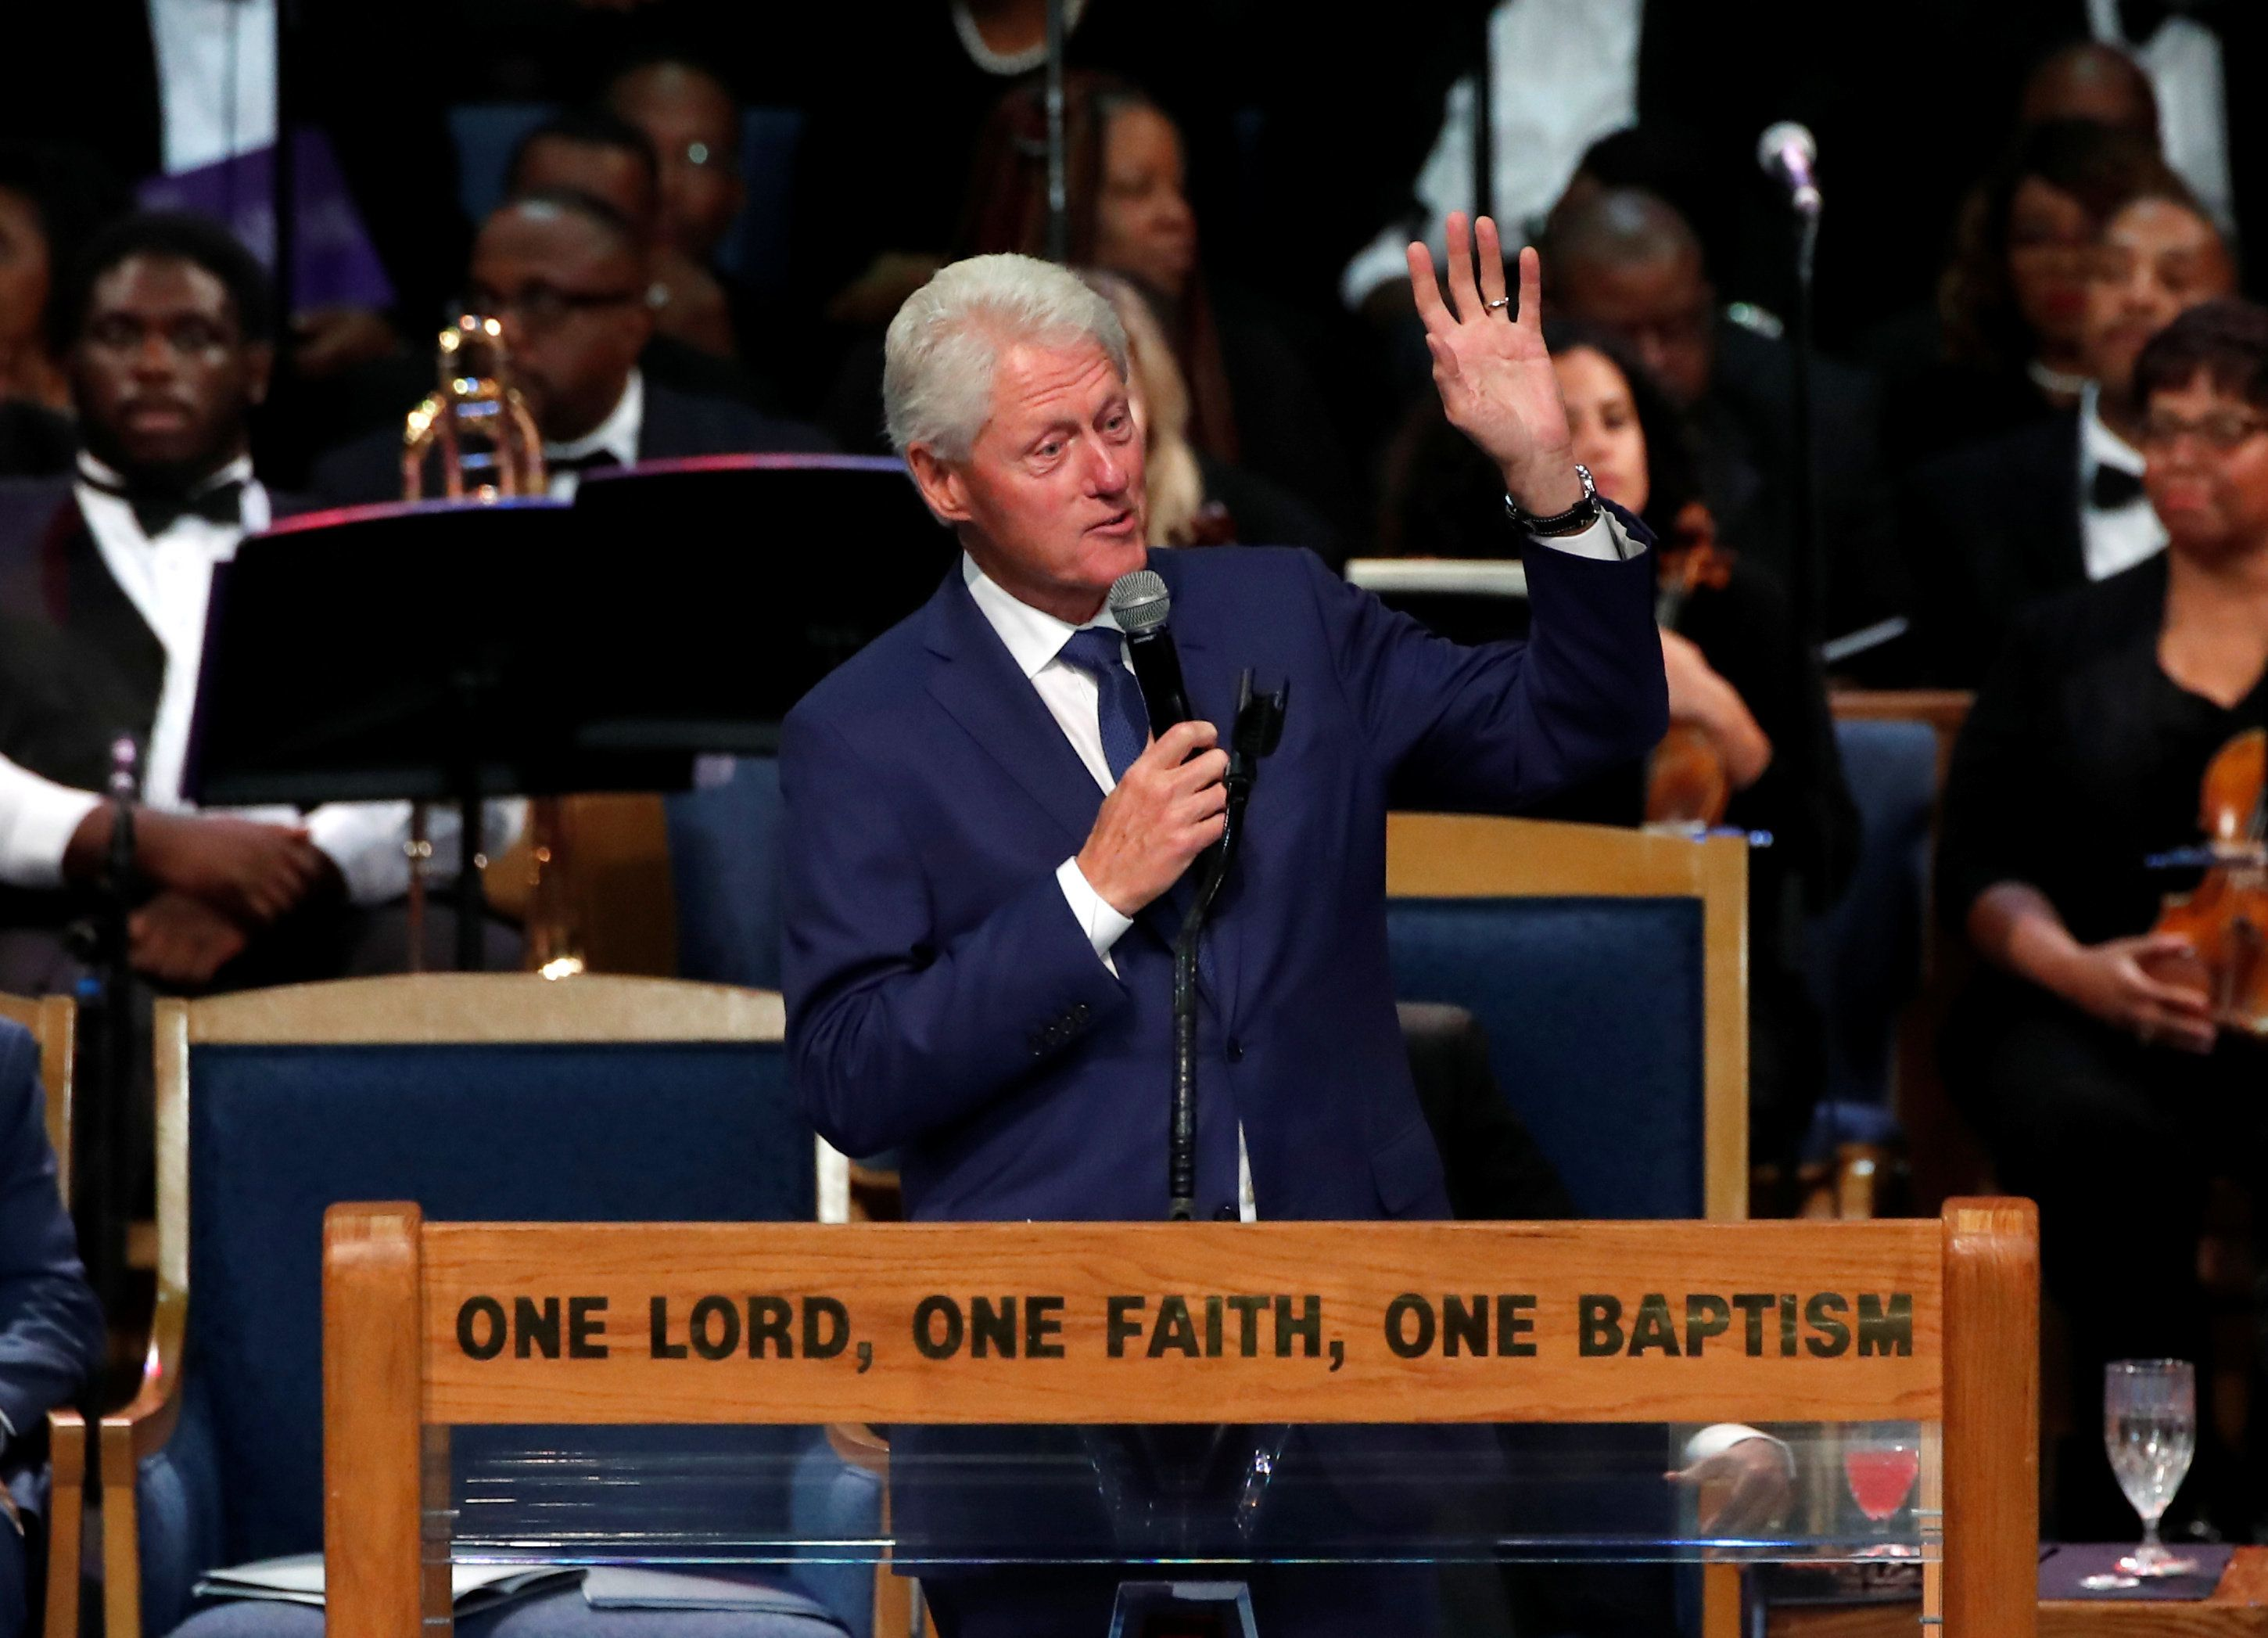 Former U.S. President Bill Clinton speaks at the funeral service for the late singer Aretha Franklin at the Greater Grace Temple in Detroit, Michigan, U.S., August 31, 2018. REUTERS/Mike Segar